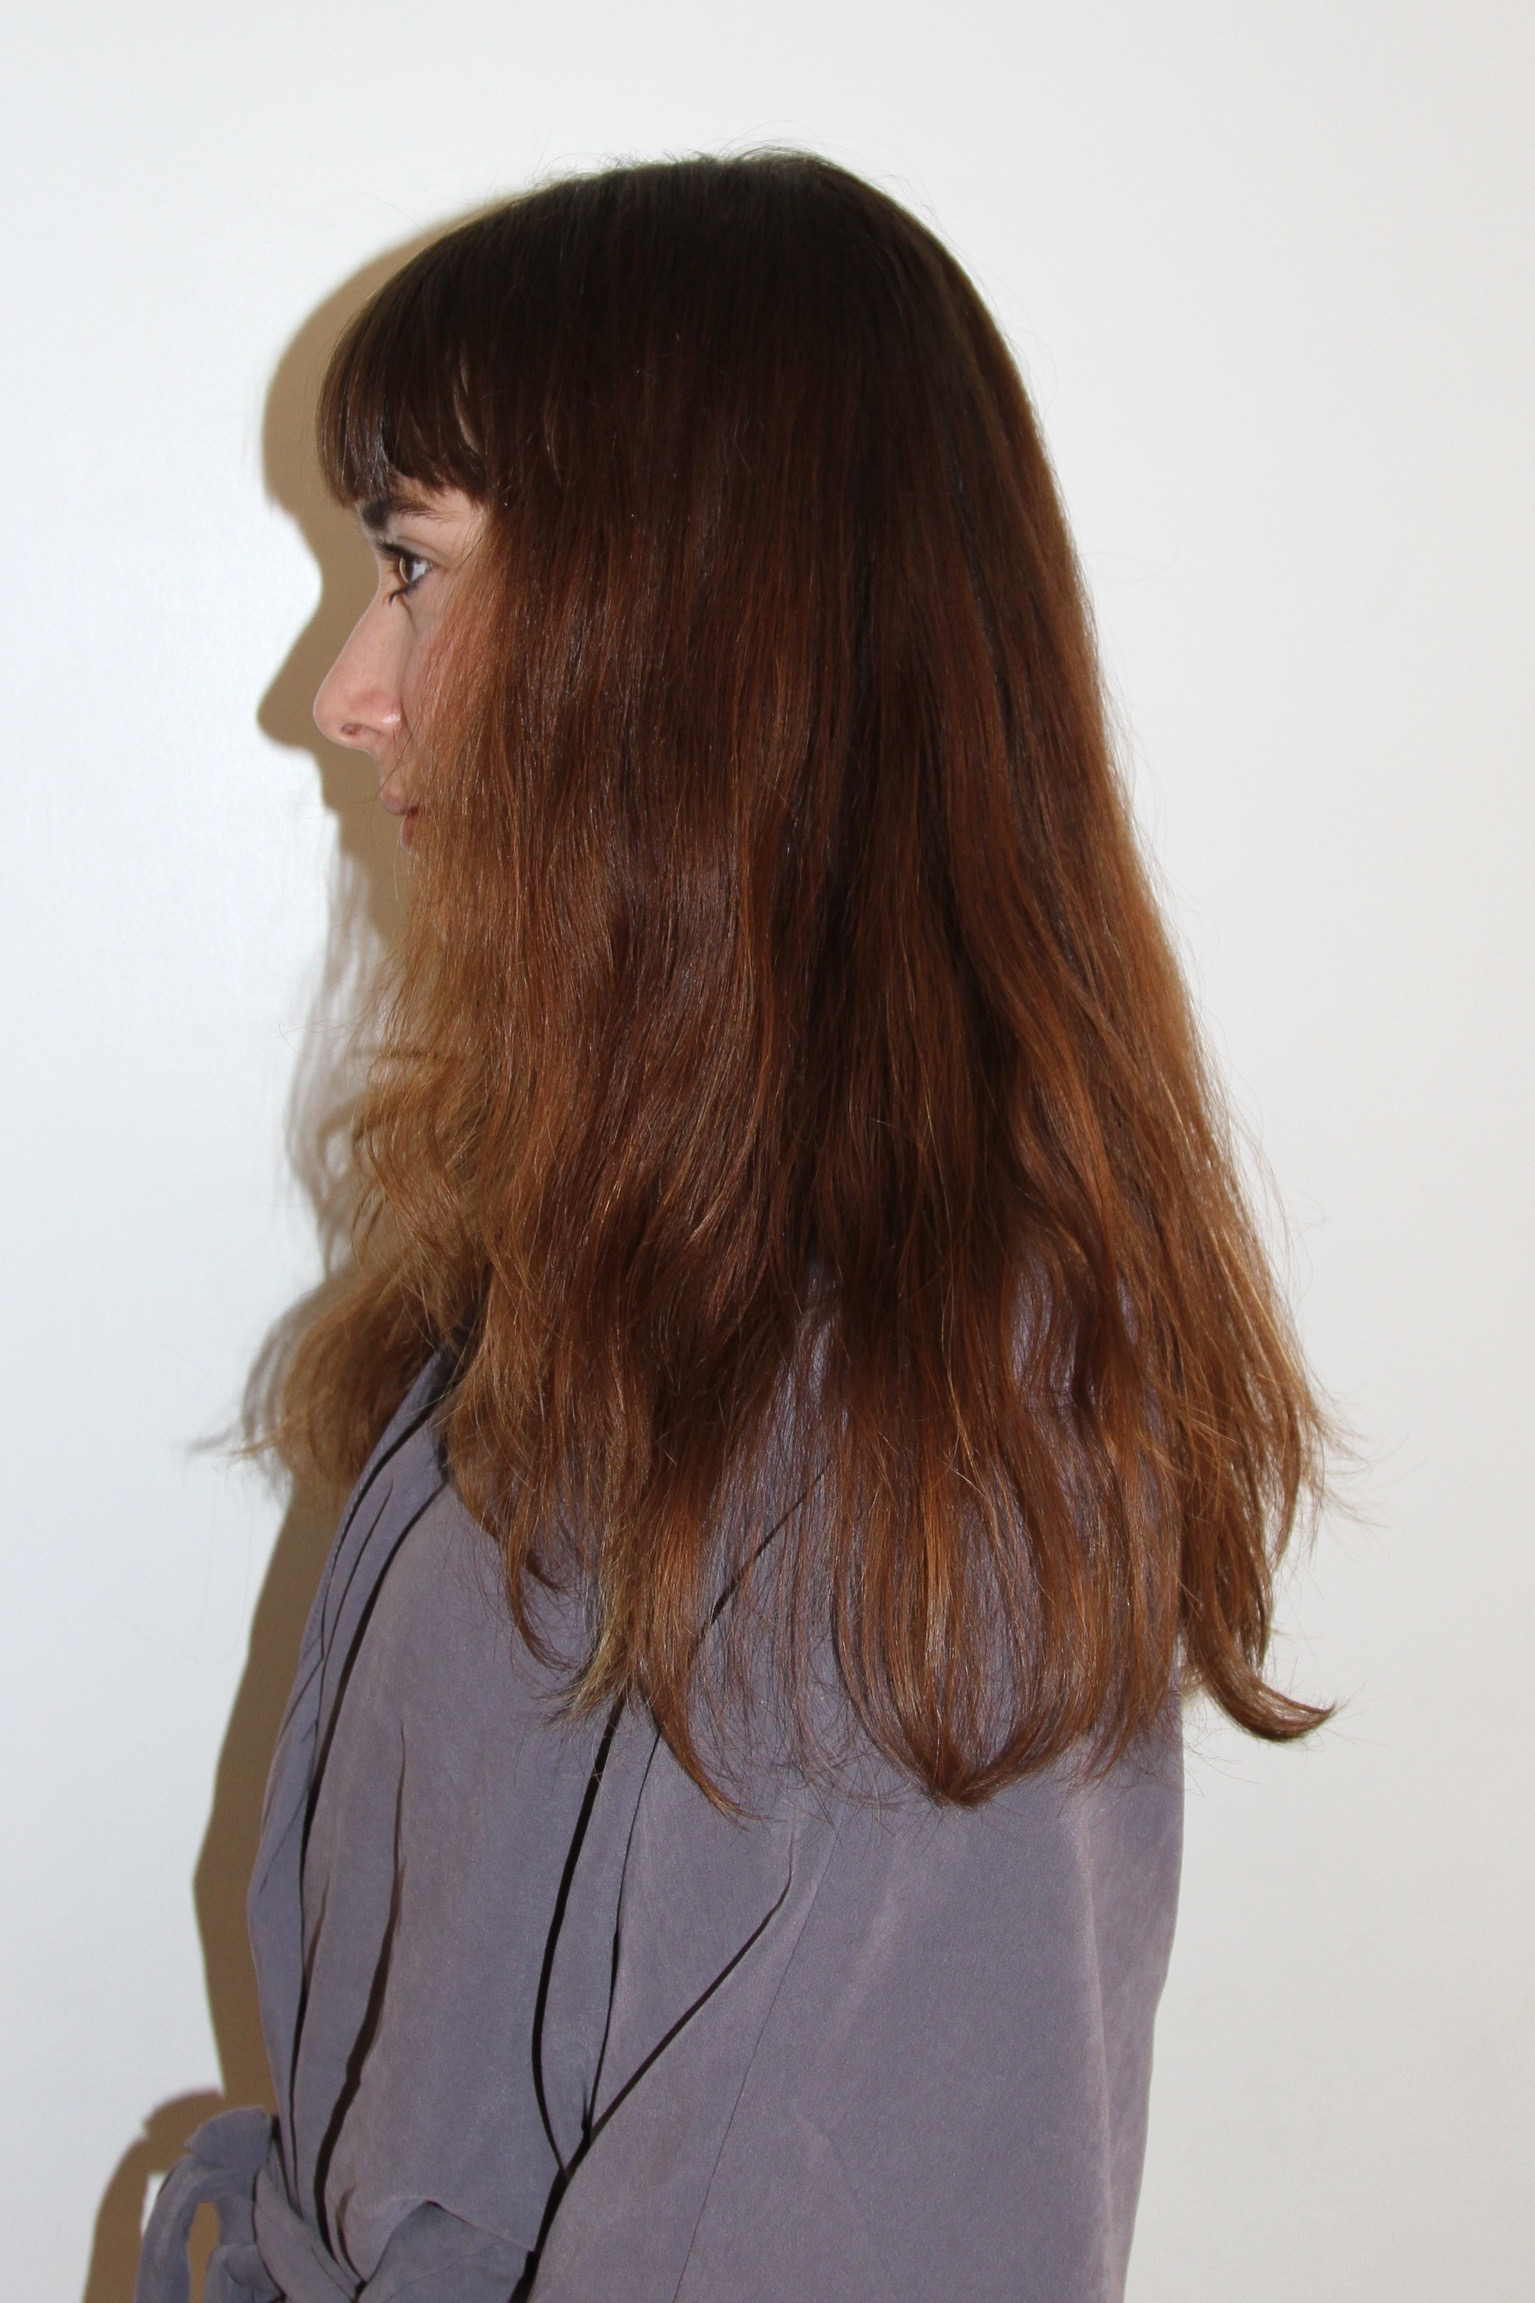 Subtle highlights on brunette hair archives page 3 of 40 before img5480 img5481 img5483 pmusecretfo Images